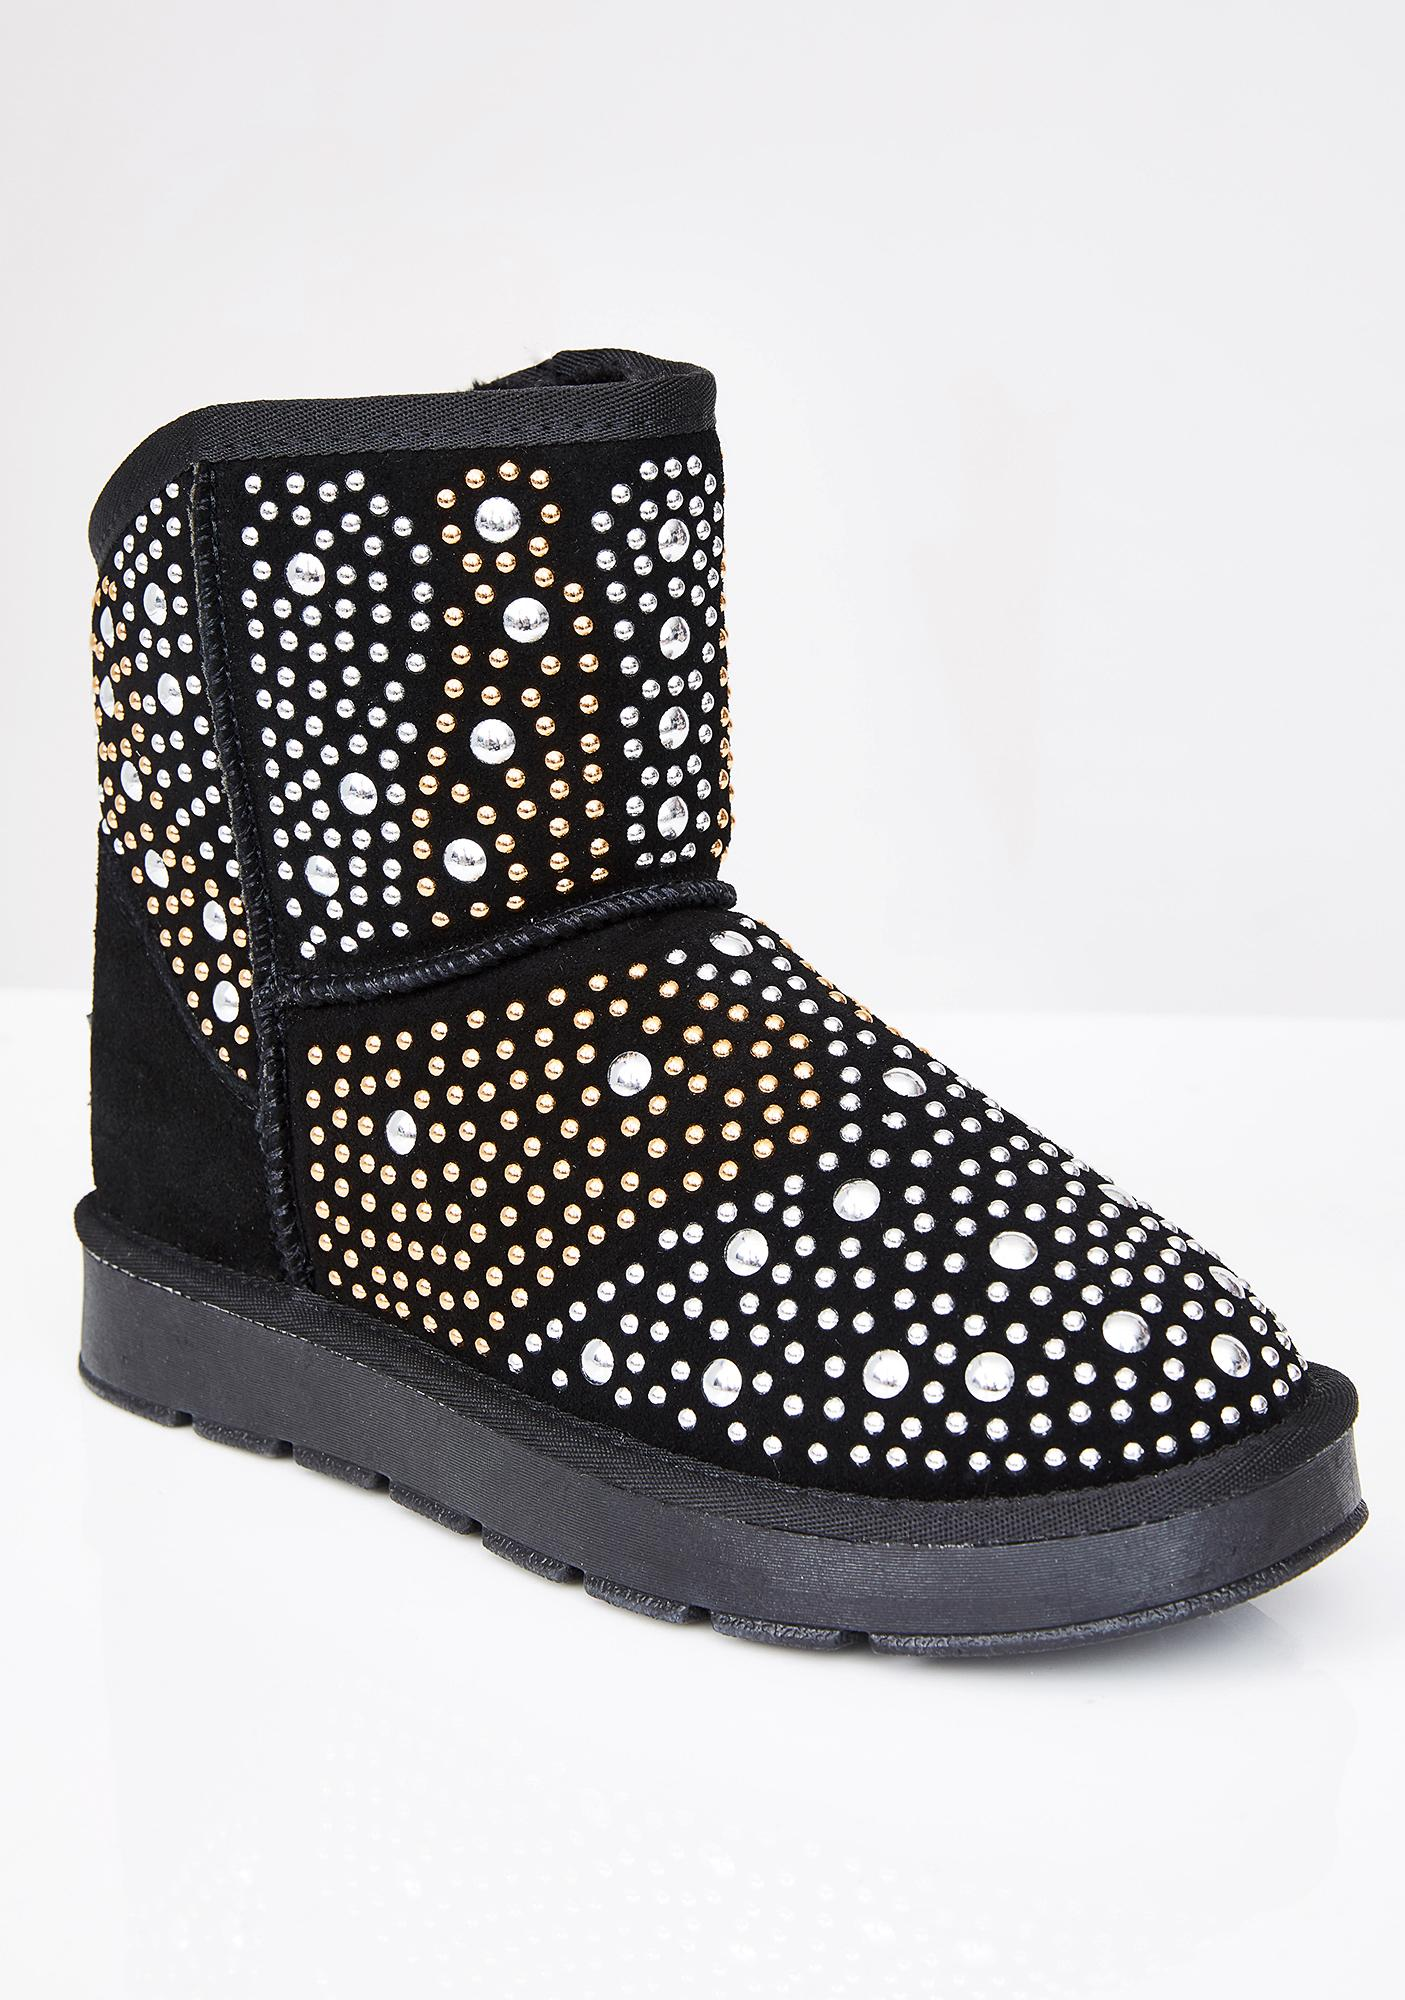 Dark Ice Cold Babe Winter Boots